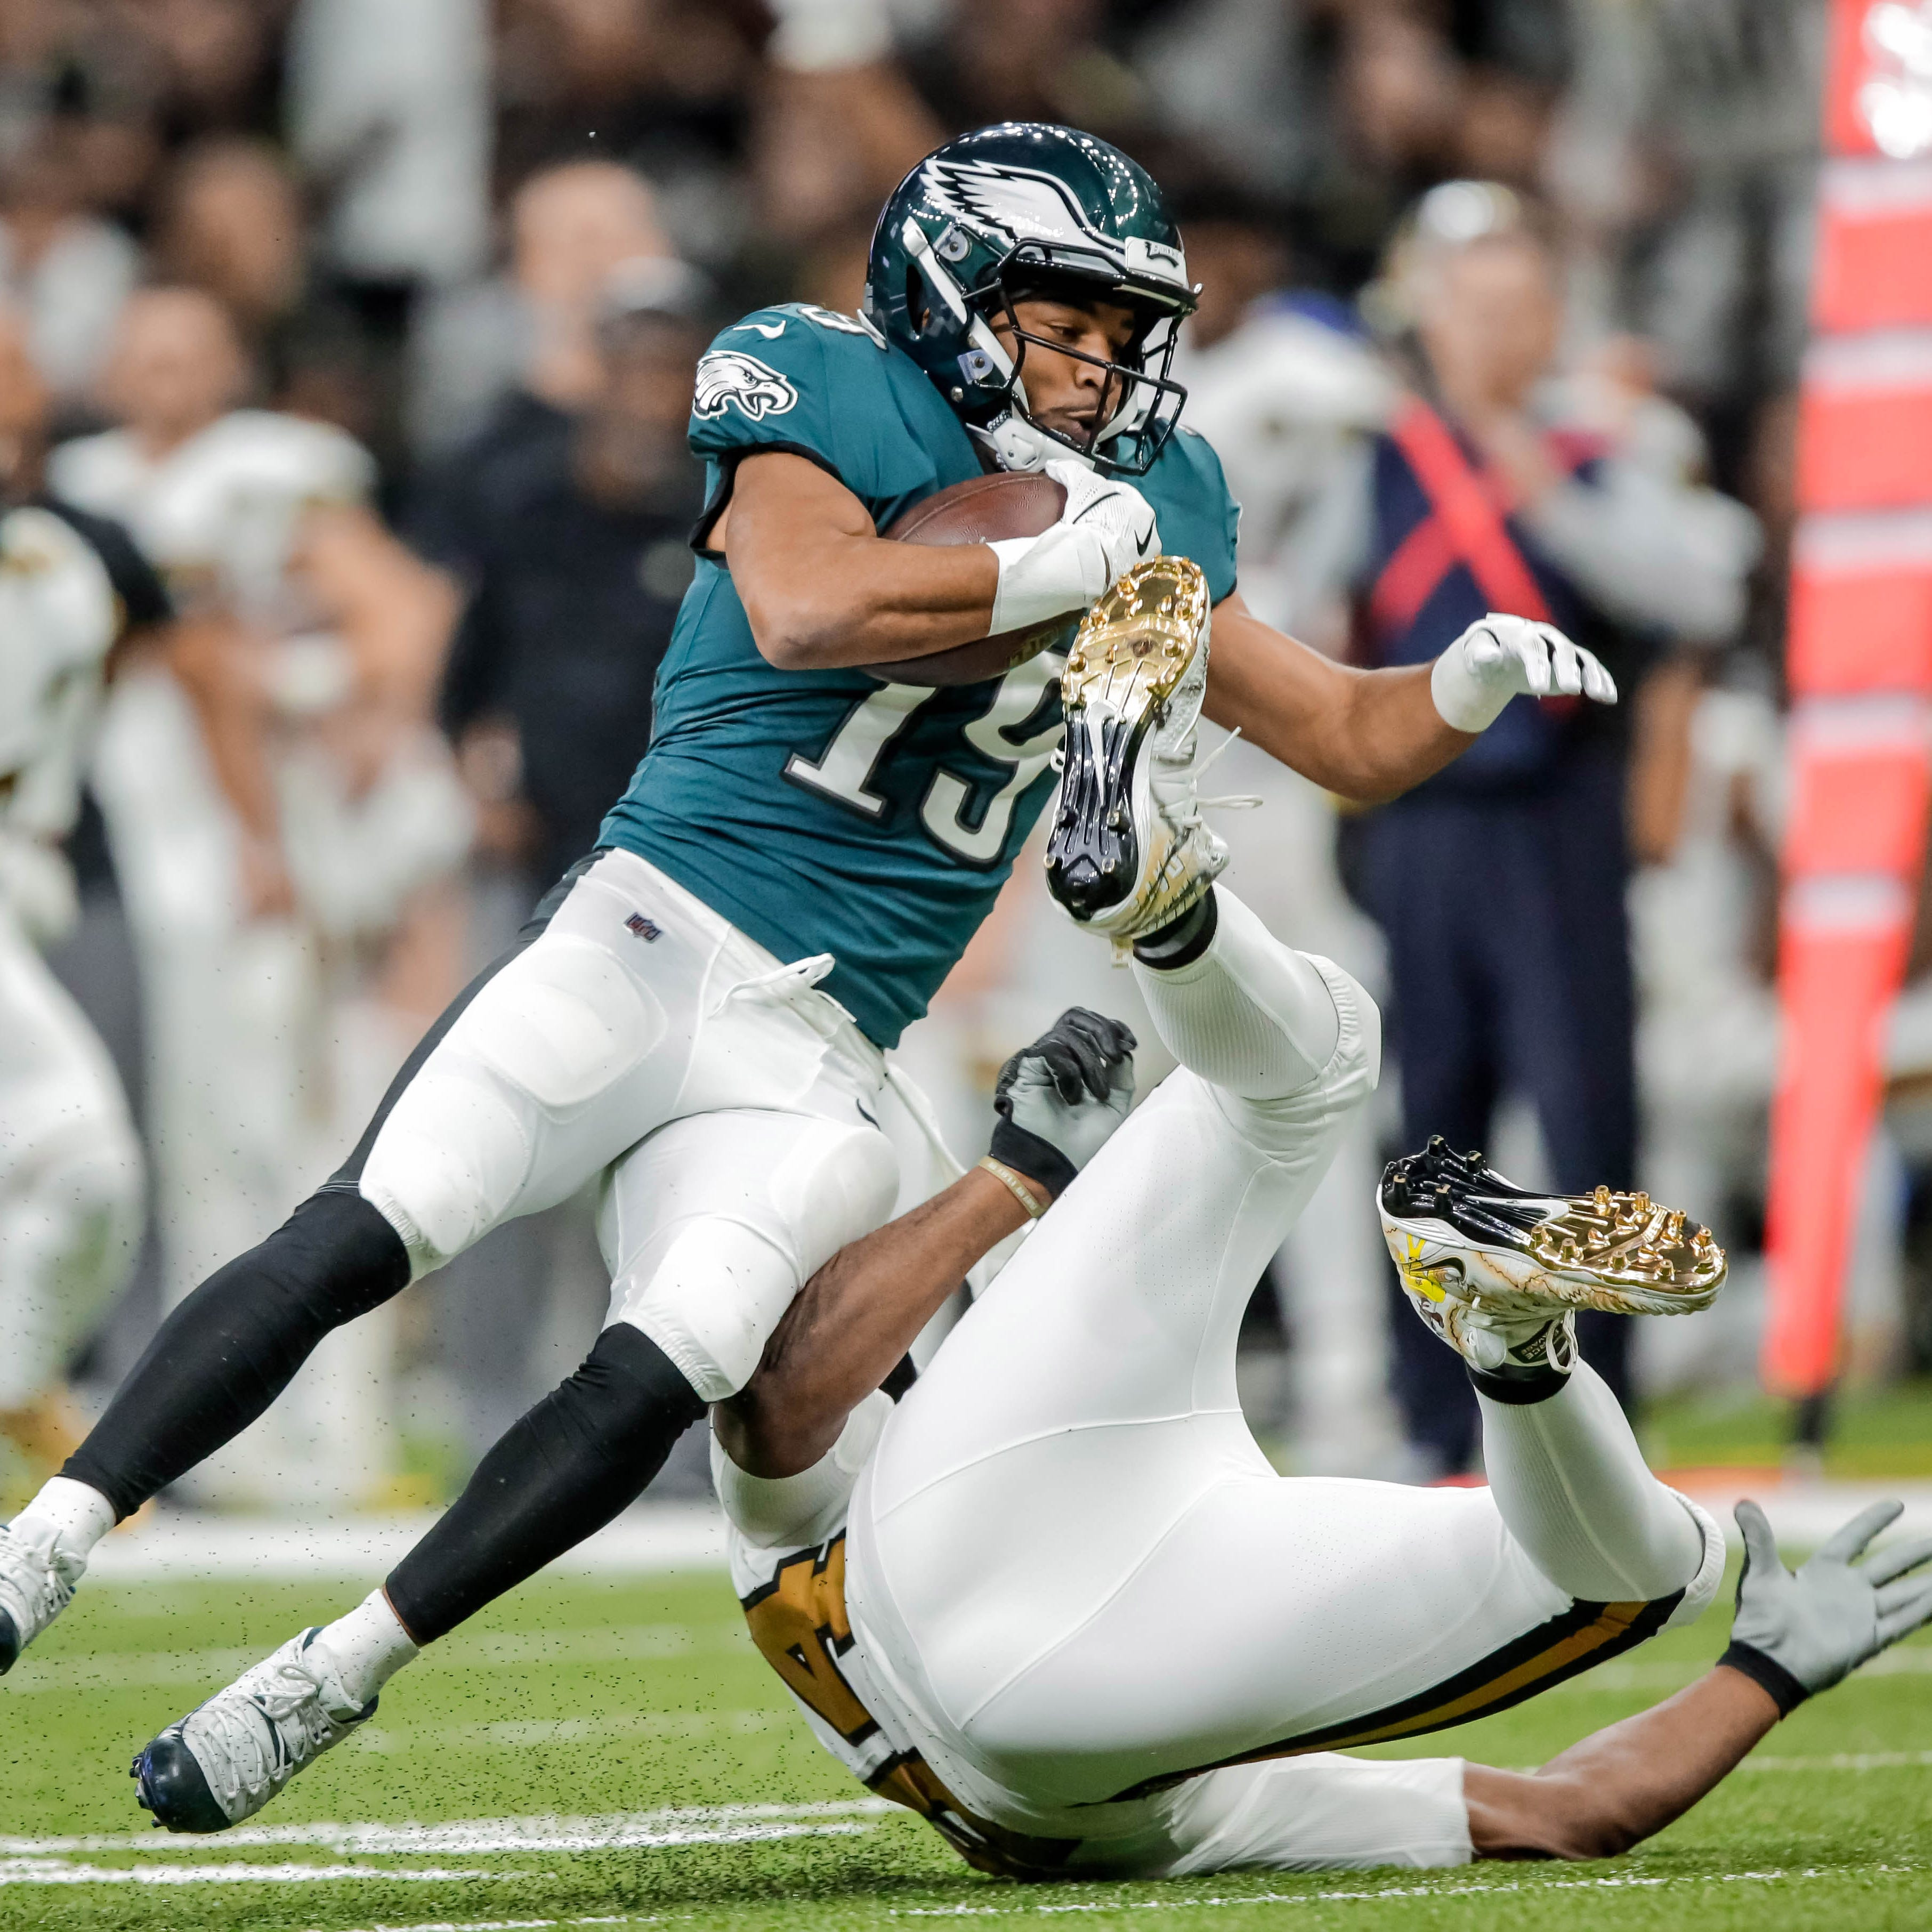 Eagles have struggled to integrate Golden Tate into the offense